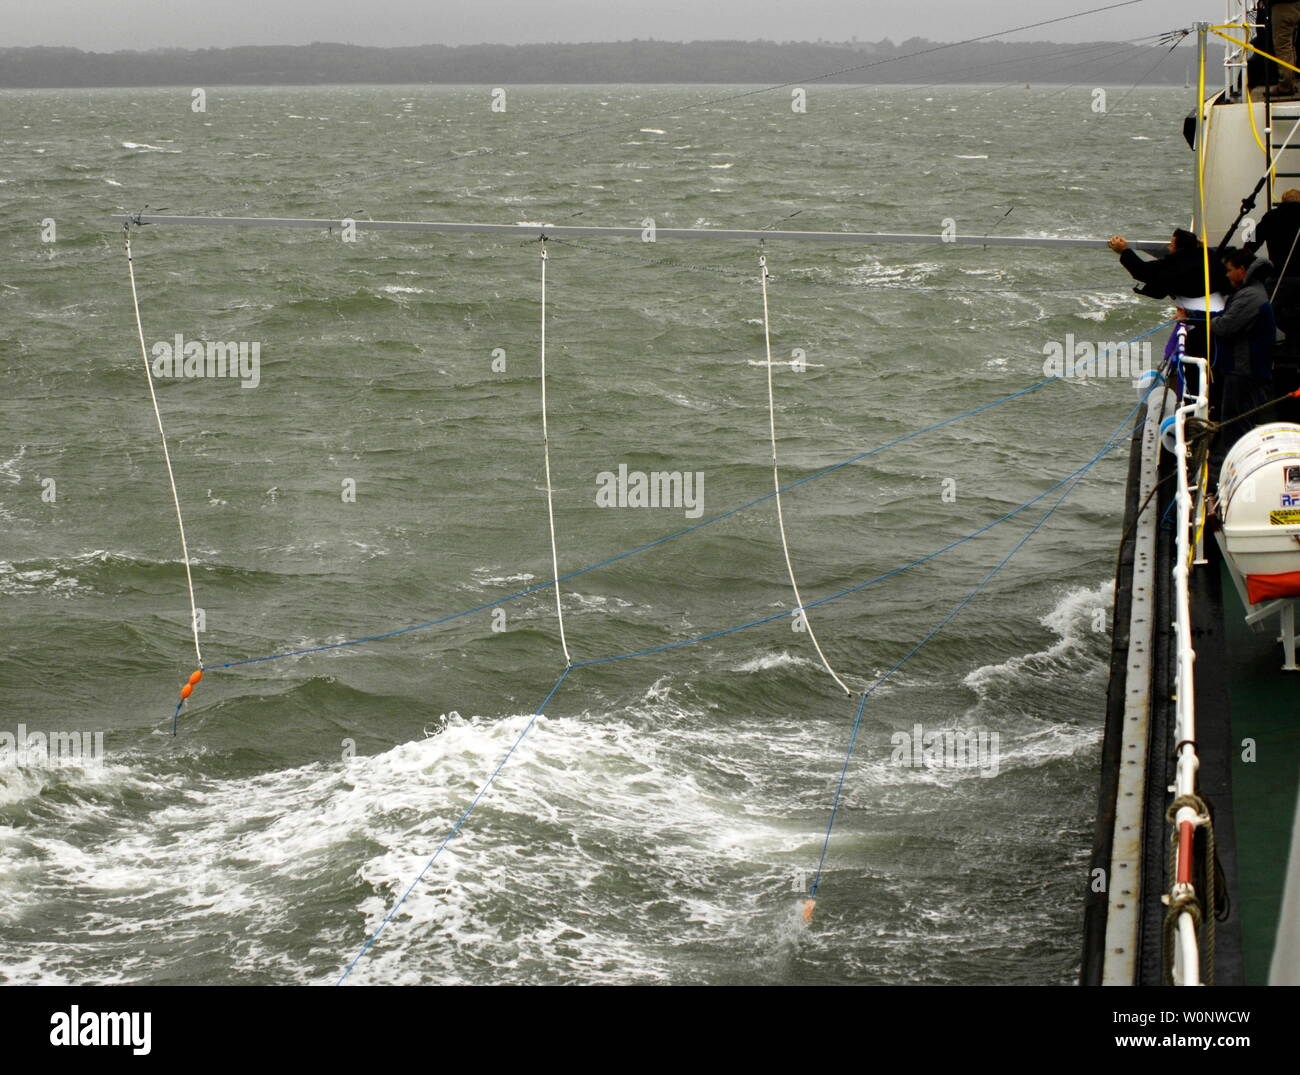 AJAXNETPHOTO. 14TH SEPTEMBER, 2010. - SOLENT, ENGLAND - ANTI-PIRACY DEMO - PROPELLOR ARRESTOR - POLYPROYLENE ROPE STREAMED ALONGSIDE AND ASTERN OF SHIP FROM METAL BOOM.  PHOTO:JONATHAN EASTLAND/AJAX REF:D2X1409_12380 - Stock Image